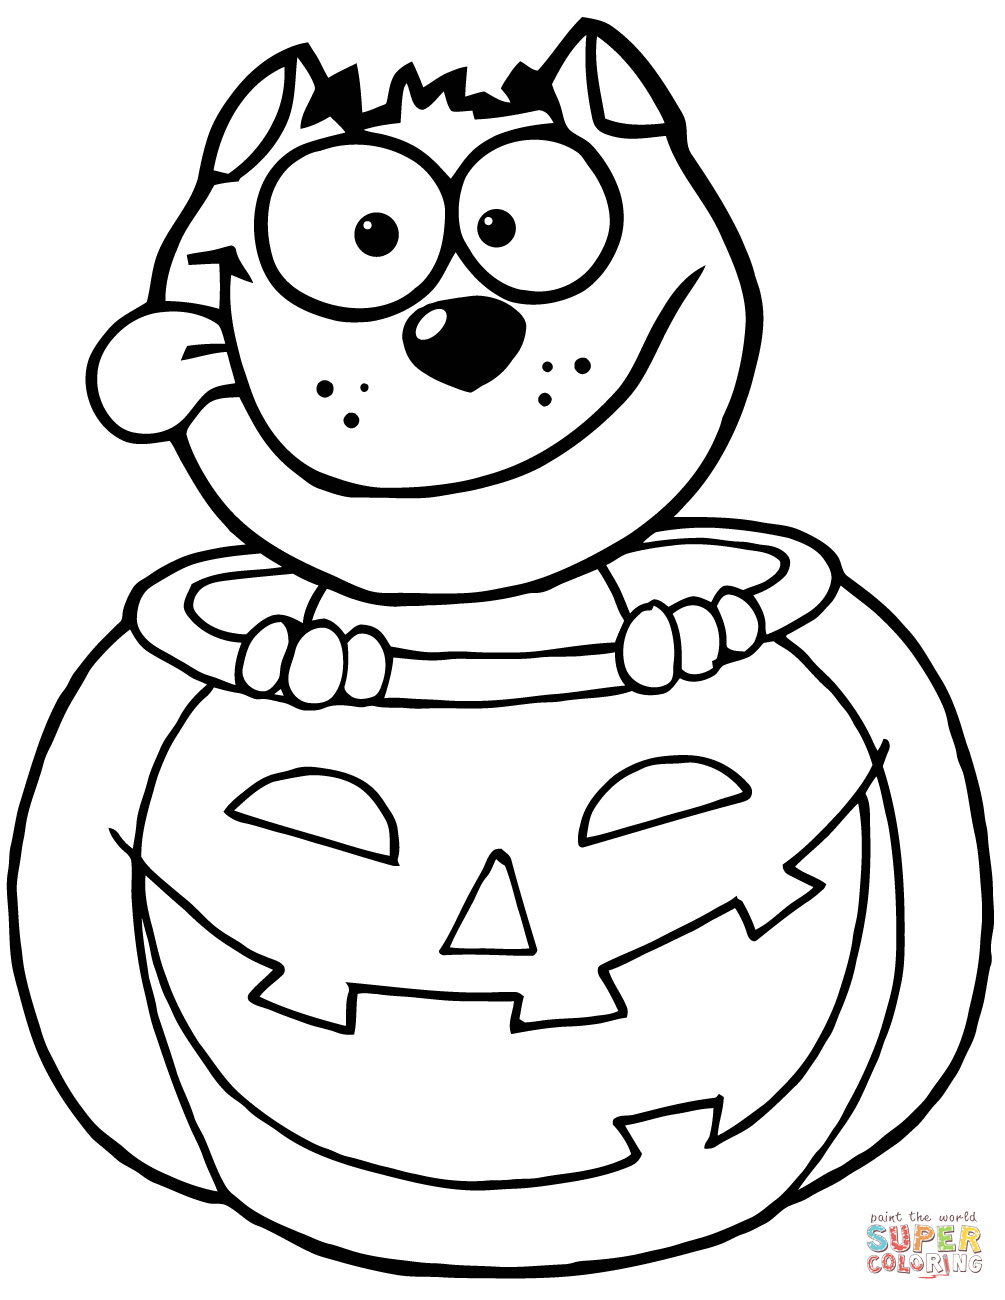 black cat sitting inside of a pumpkin coloring page free